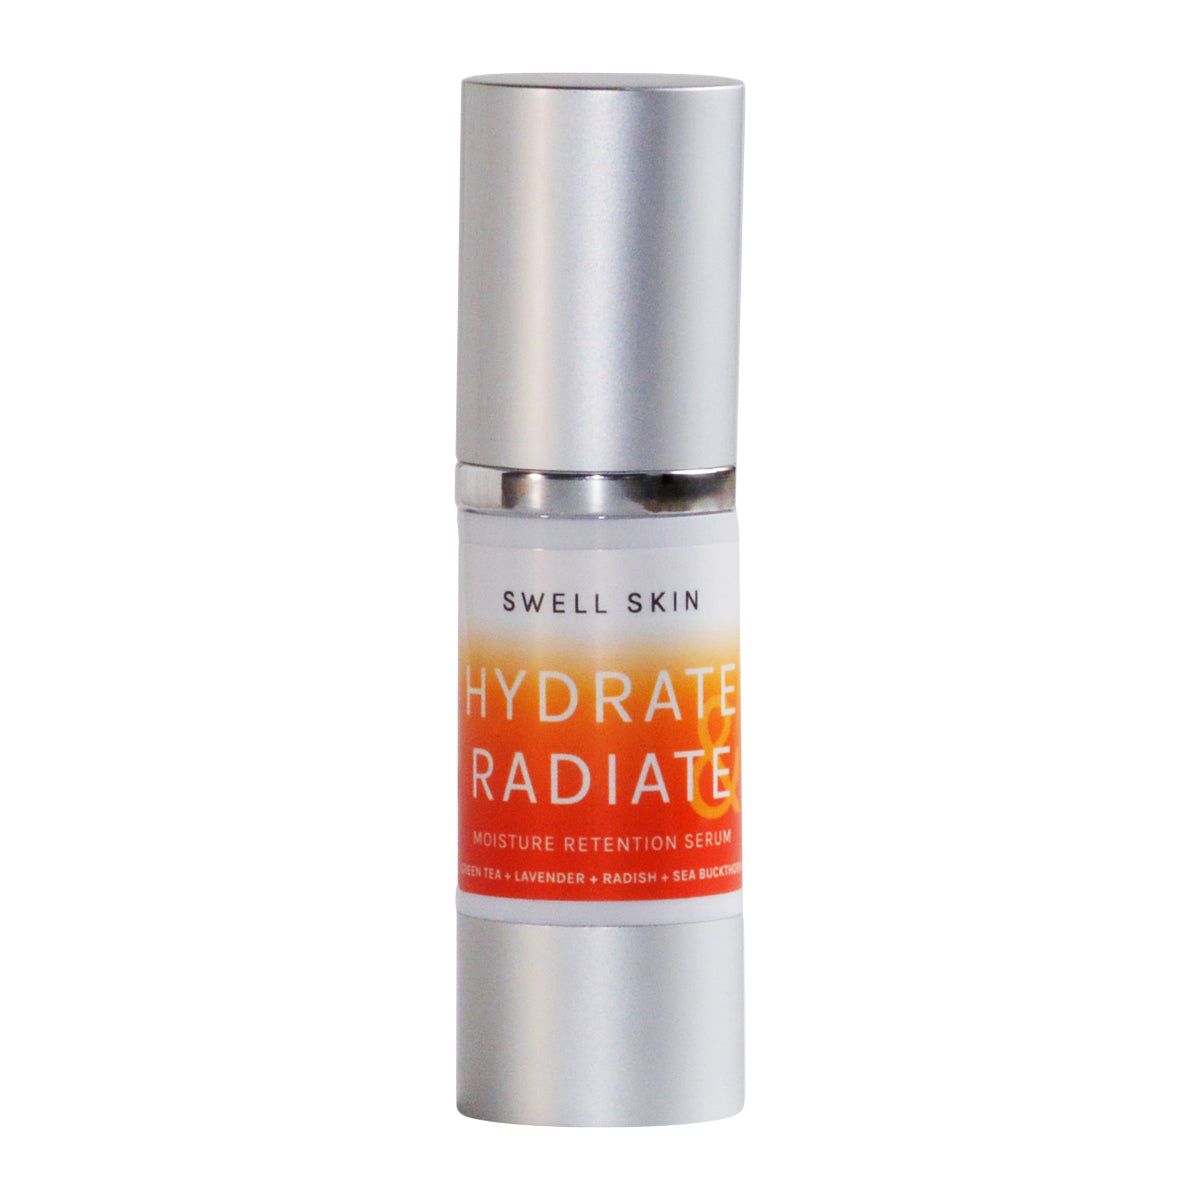 Hydrating skin plumping serum 1 fl oz 30 ml